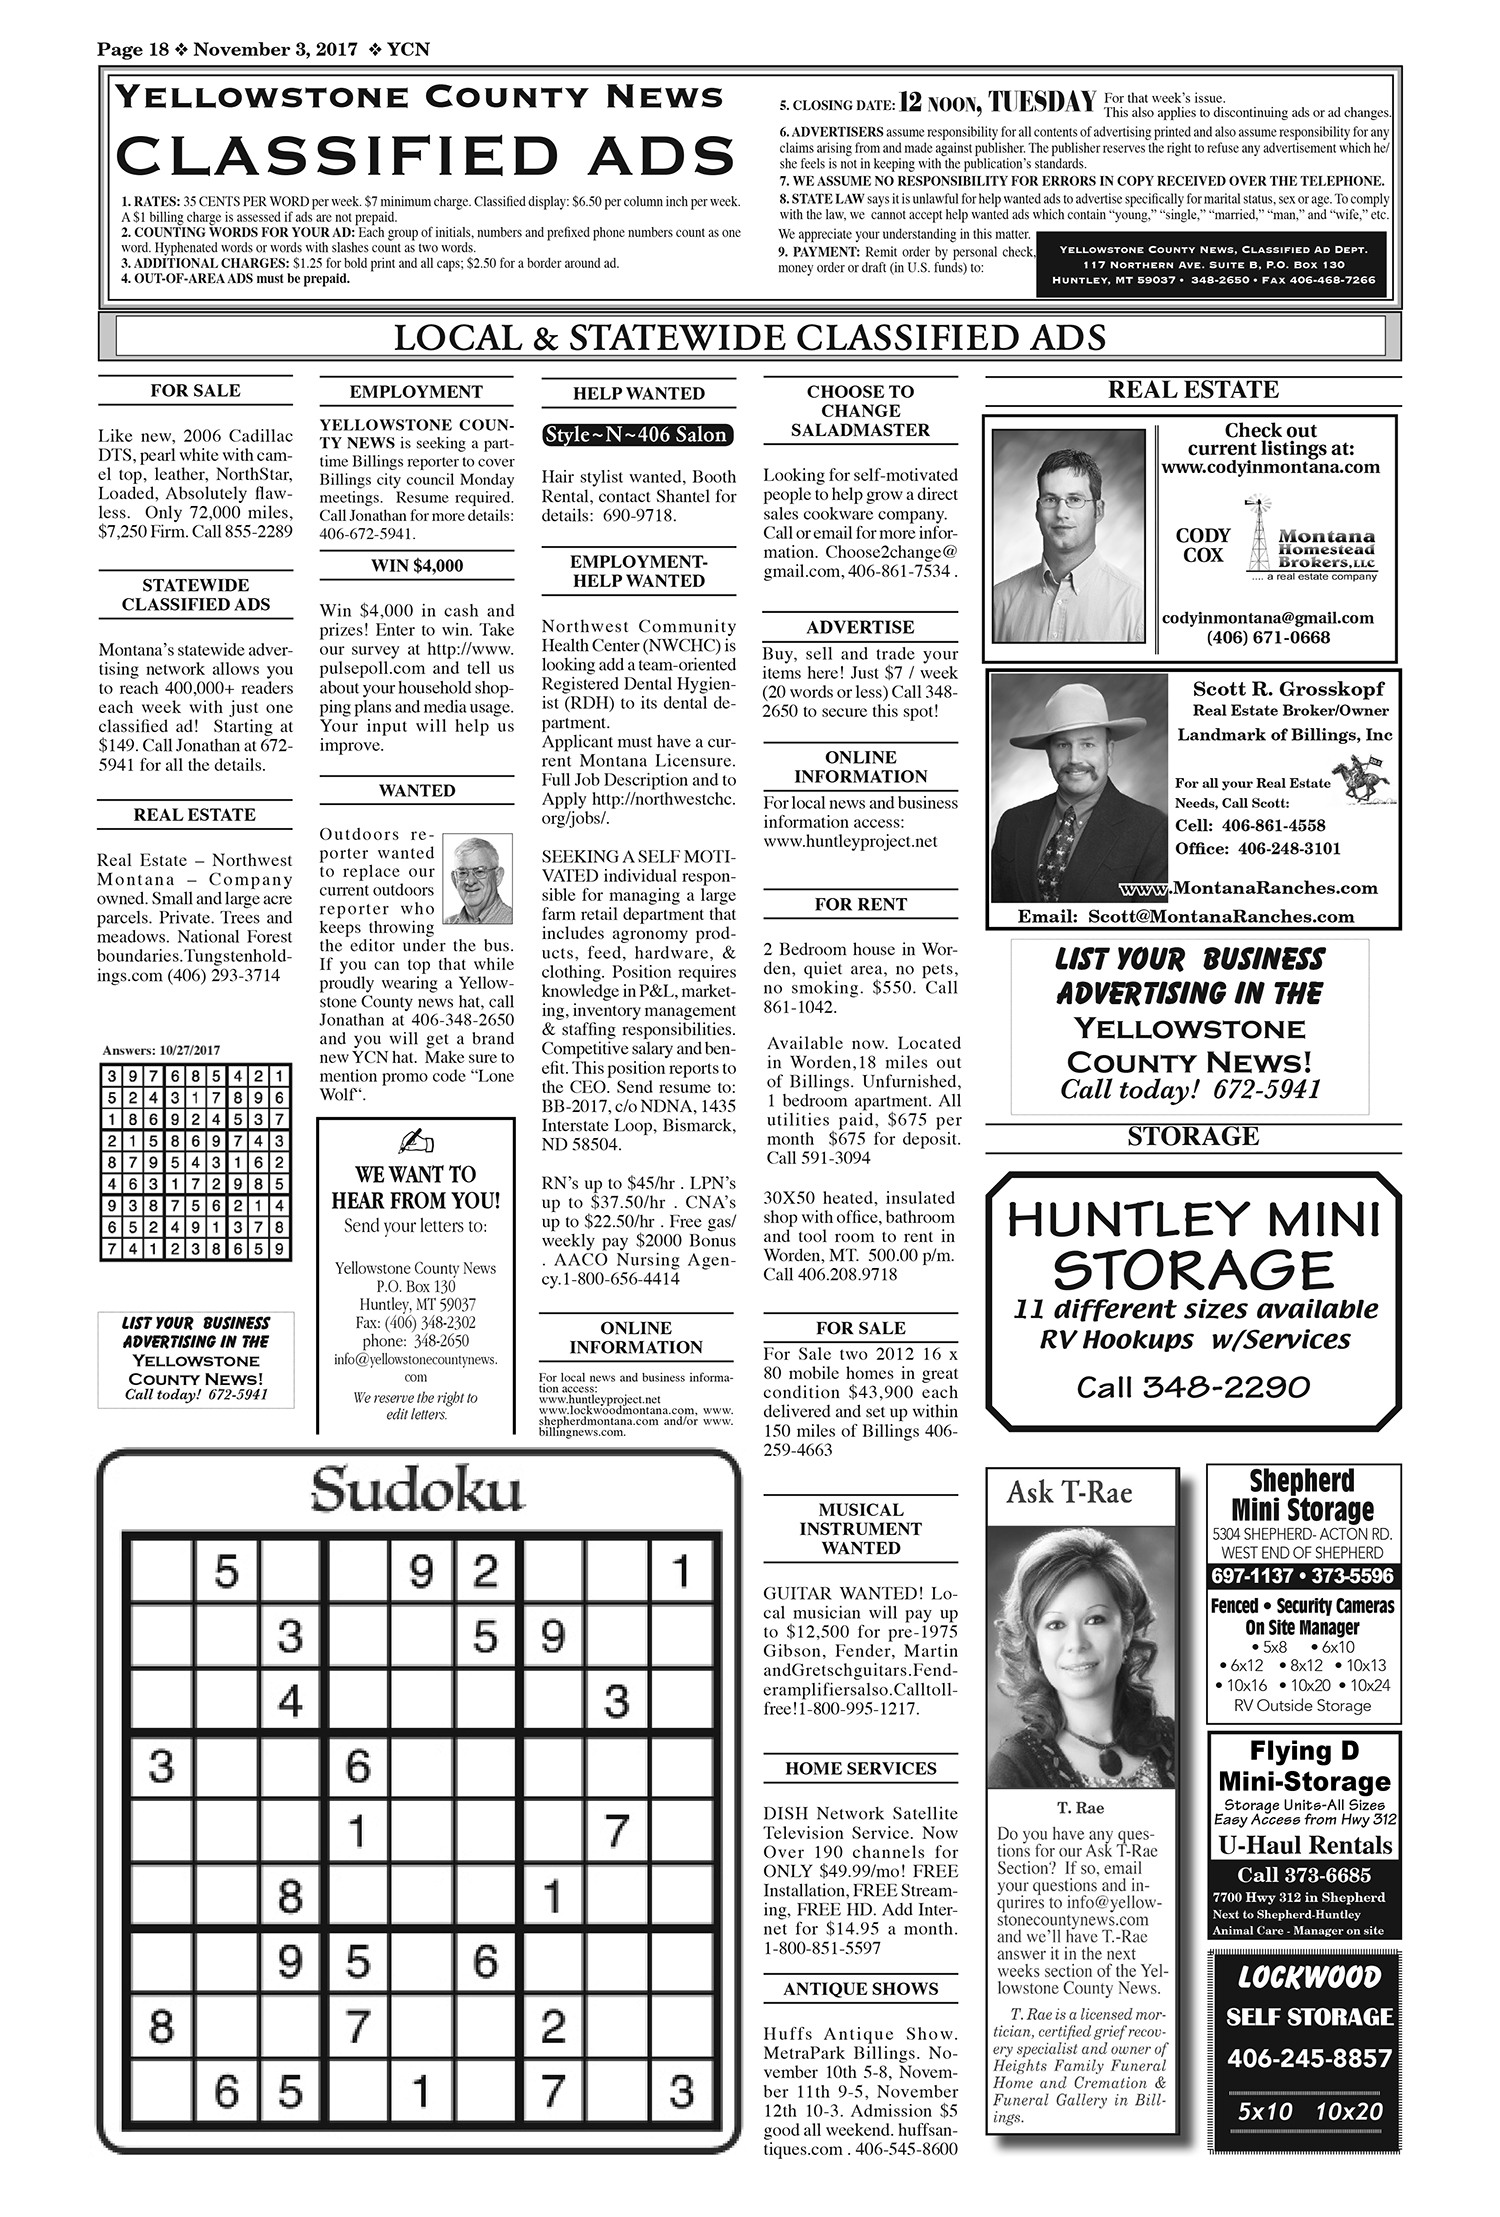 Classifieds-18YCN11032017 | Yellowstone County News